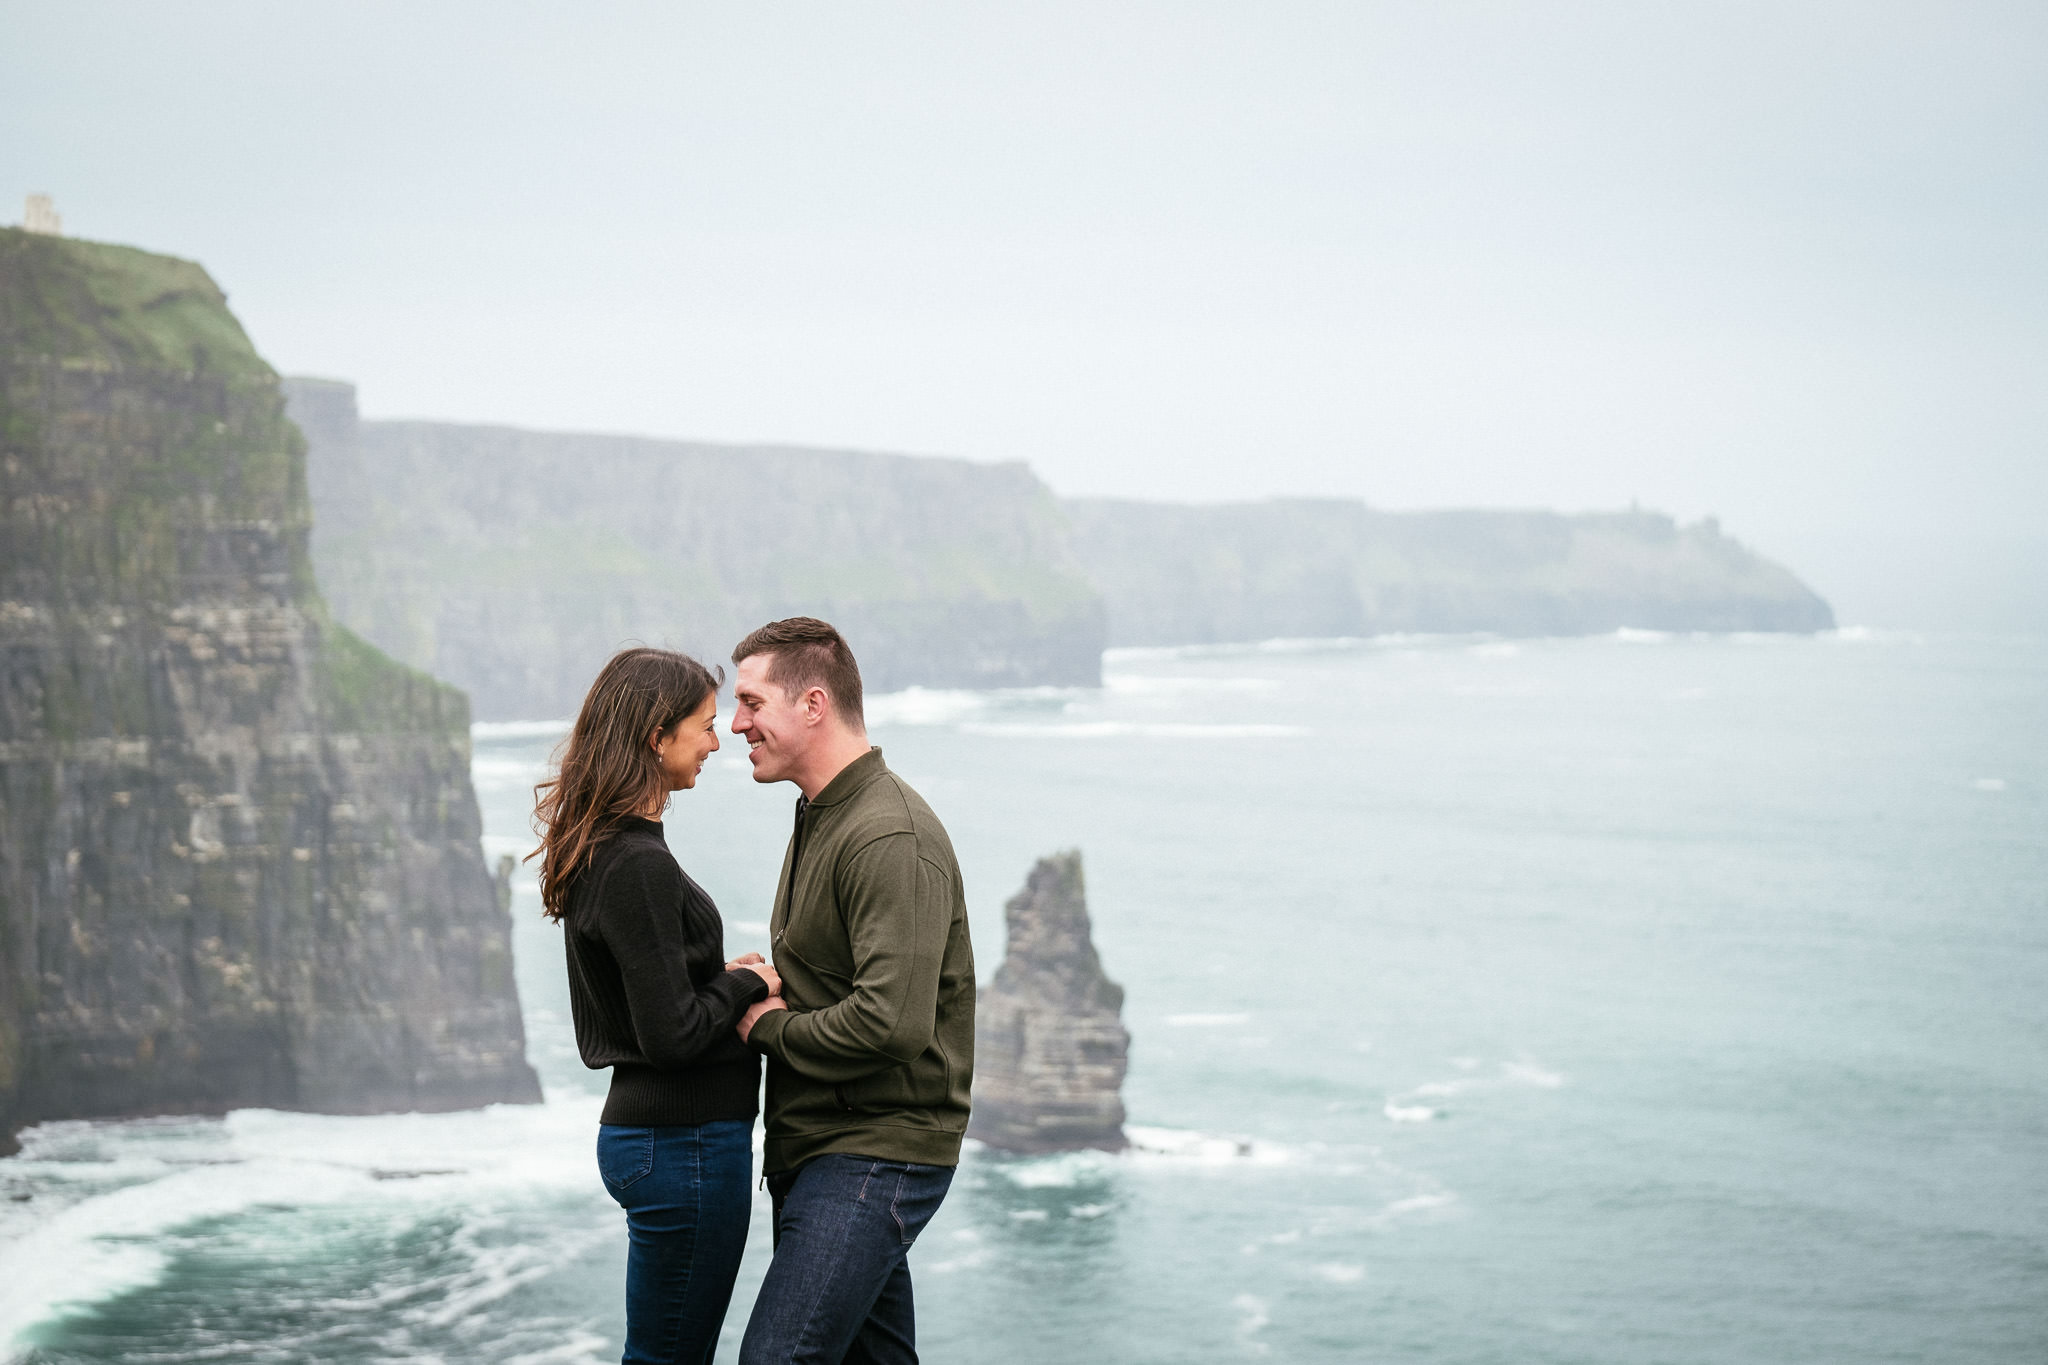 engaged couple embracing at the Cliffs of Moher Ireland